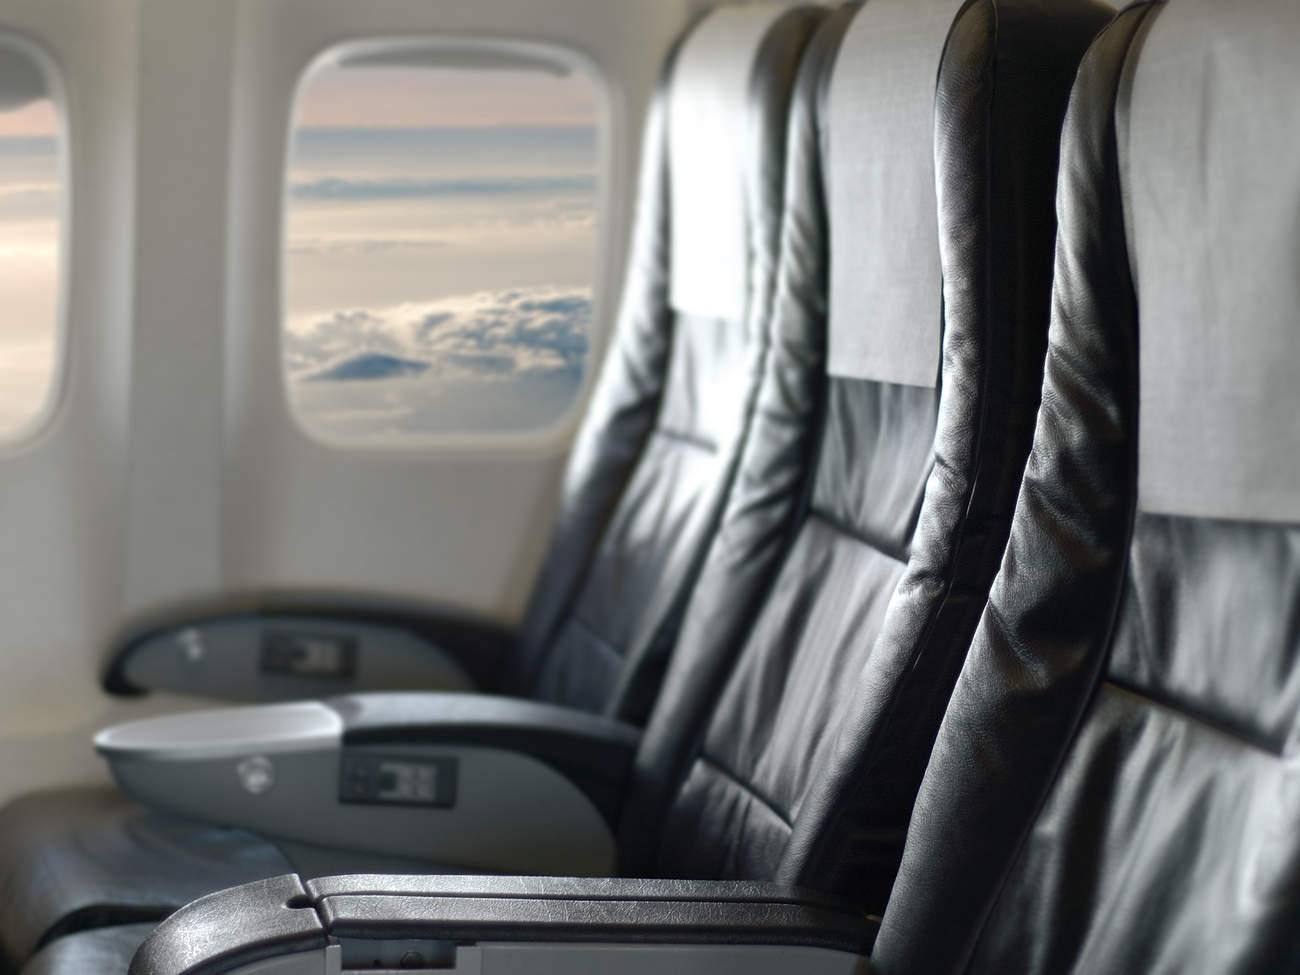 dirtiest places on airplane